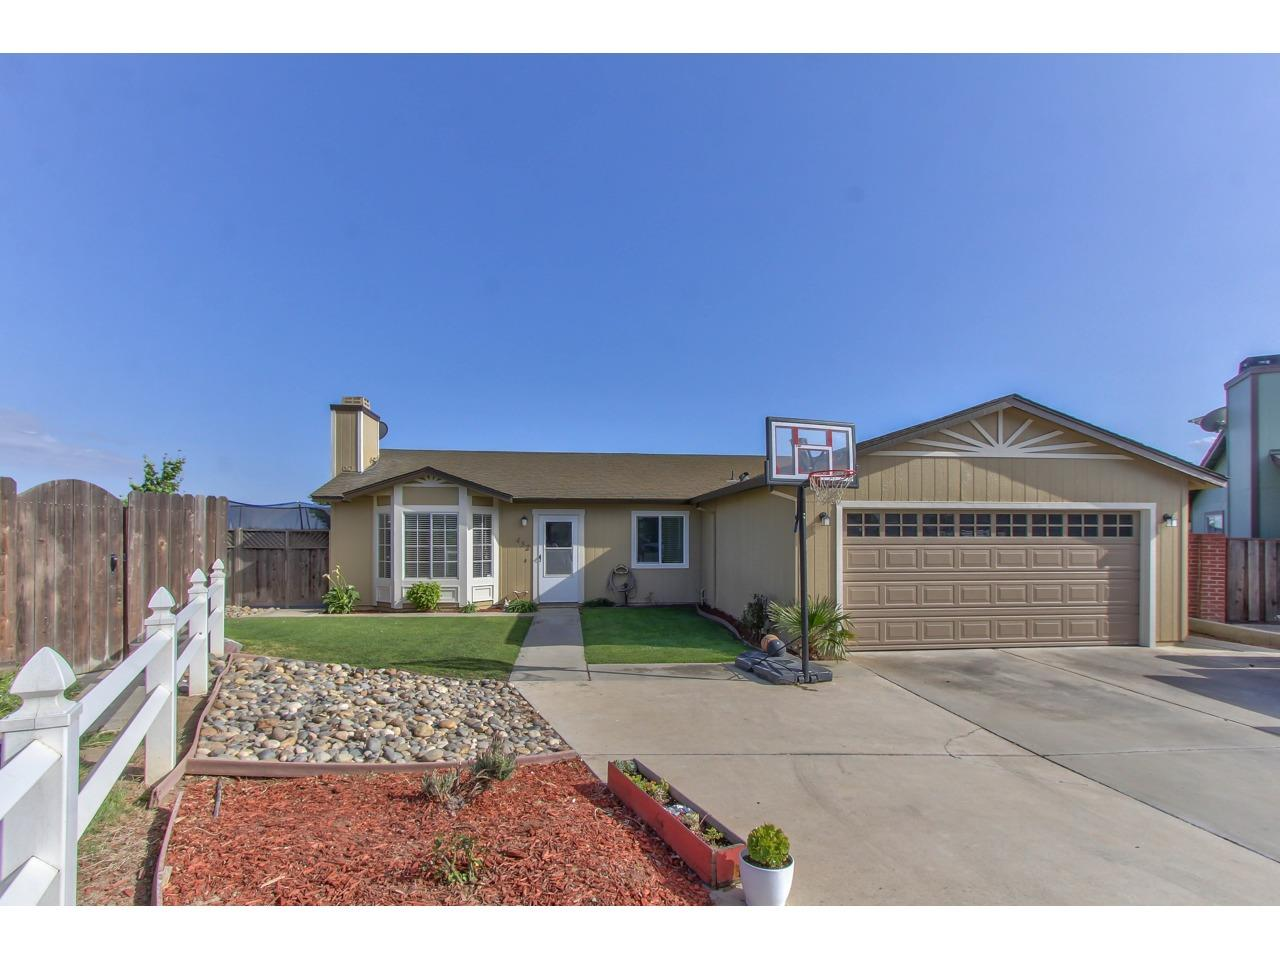 Detail Gallery Image 1 of 1 For 432 Rubion Cir, Soledad, CA, 93960 - 4 Beds | 2 Baths